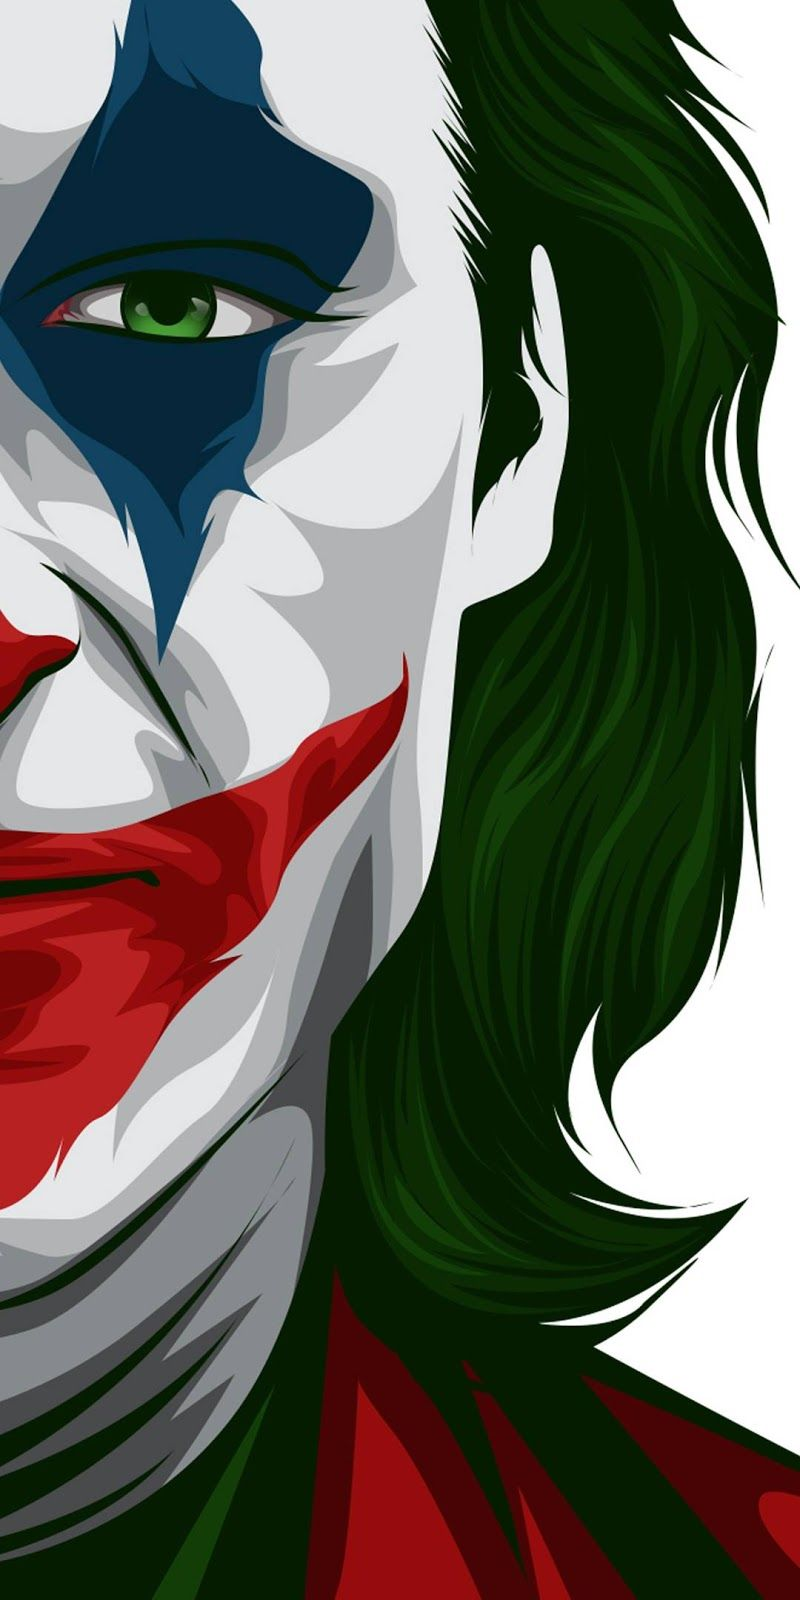 Joker Wallpapers For Iphone Android Full Hd Joker Painting Joker Wallpapers Joker Hd Wallpaper